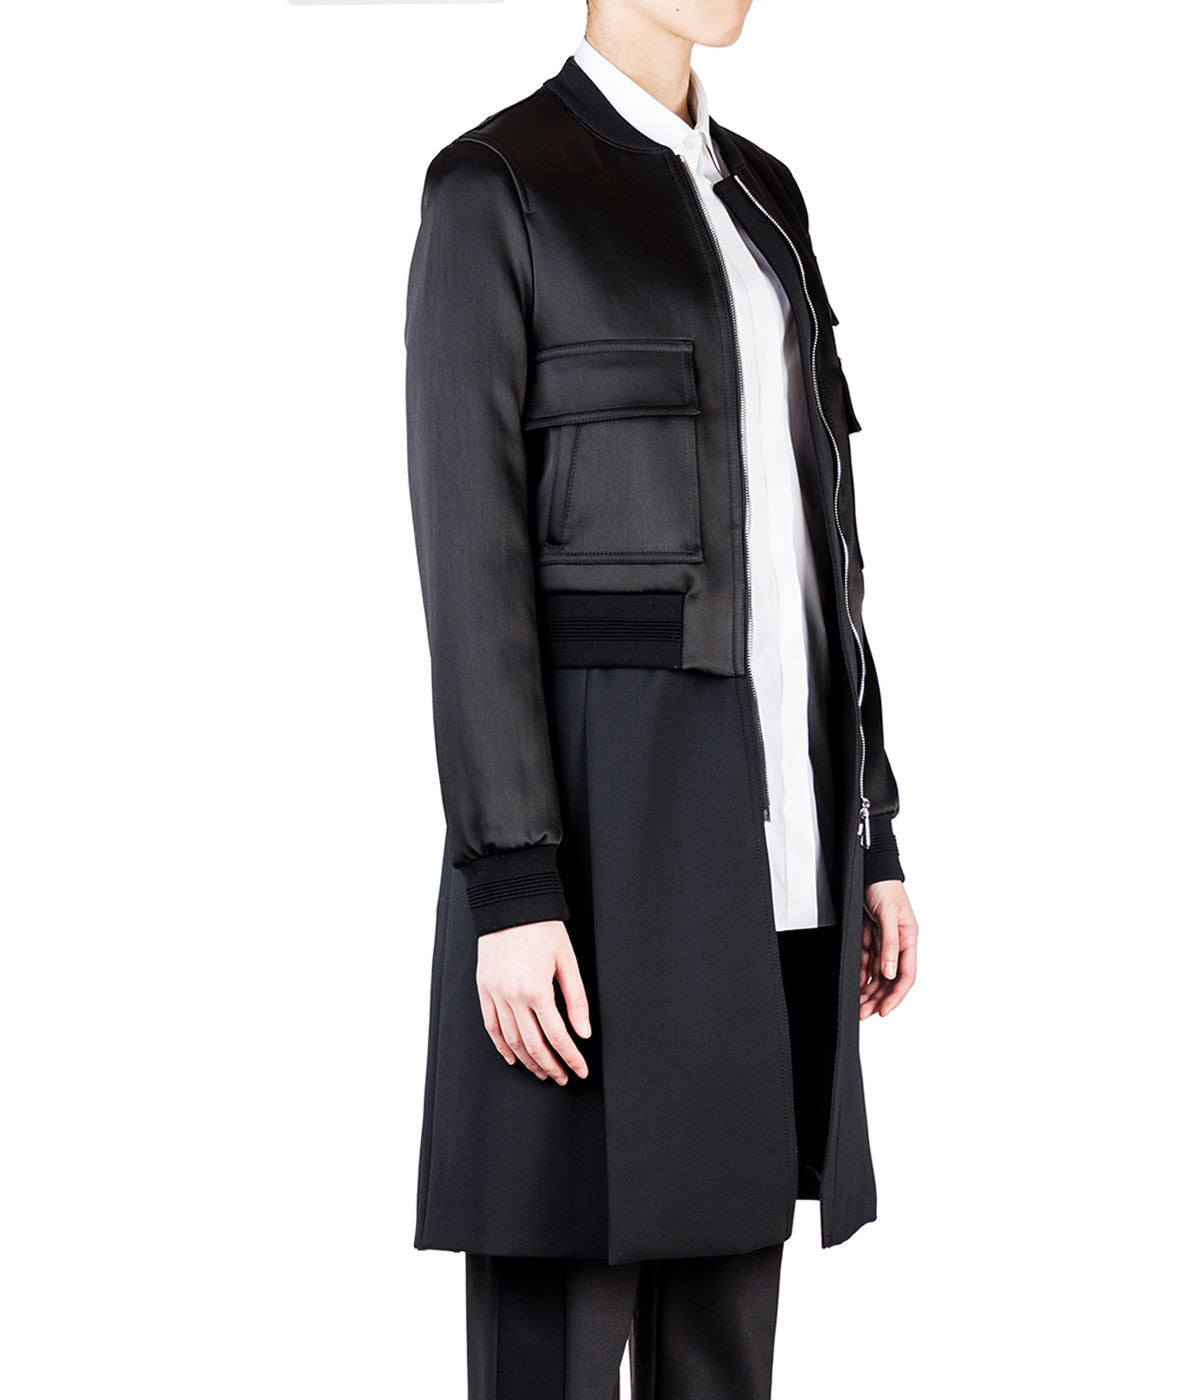 Hybrid Coat with Bomber